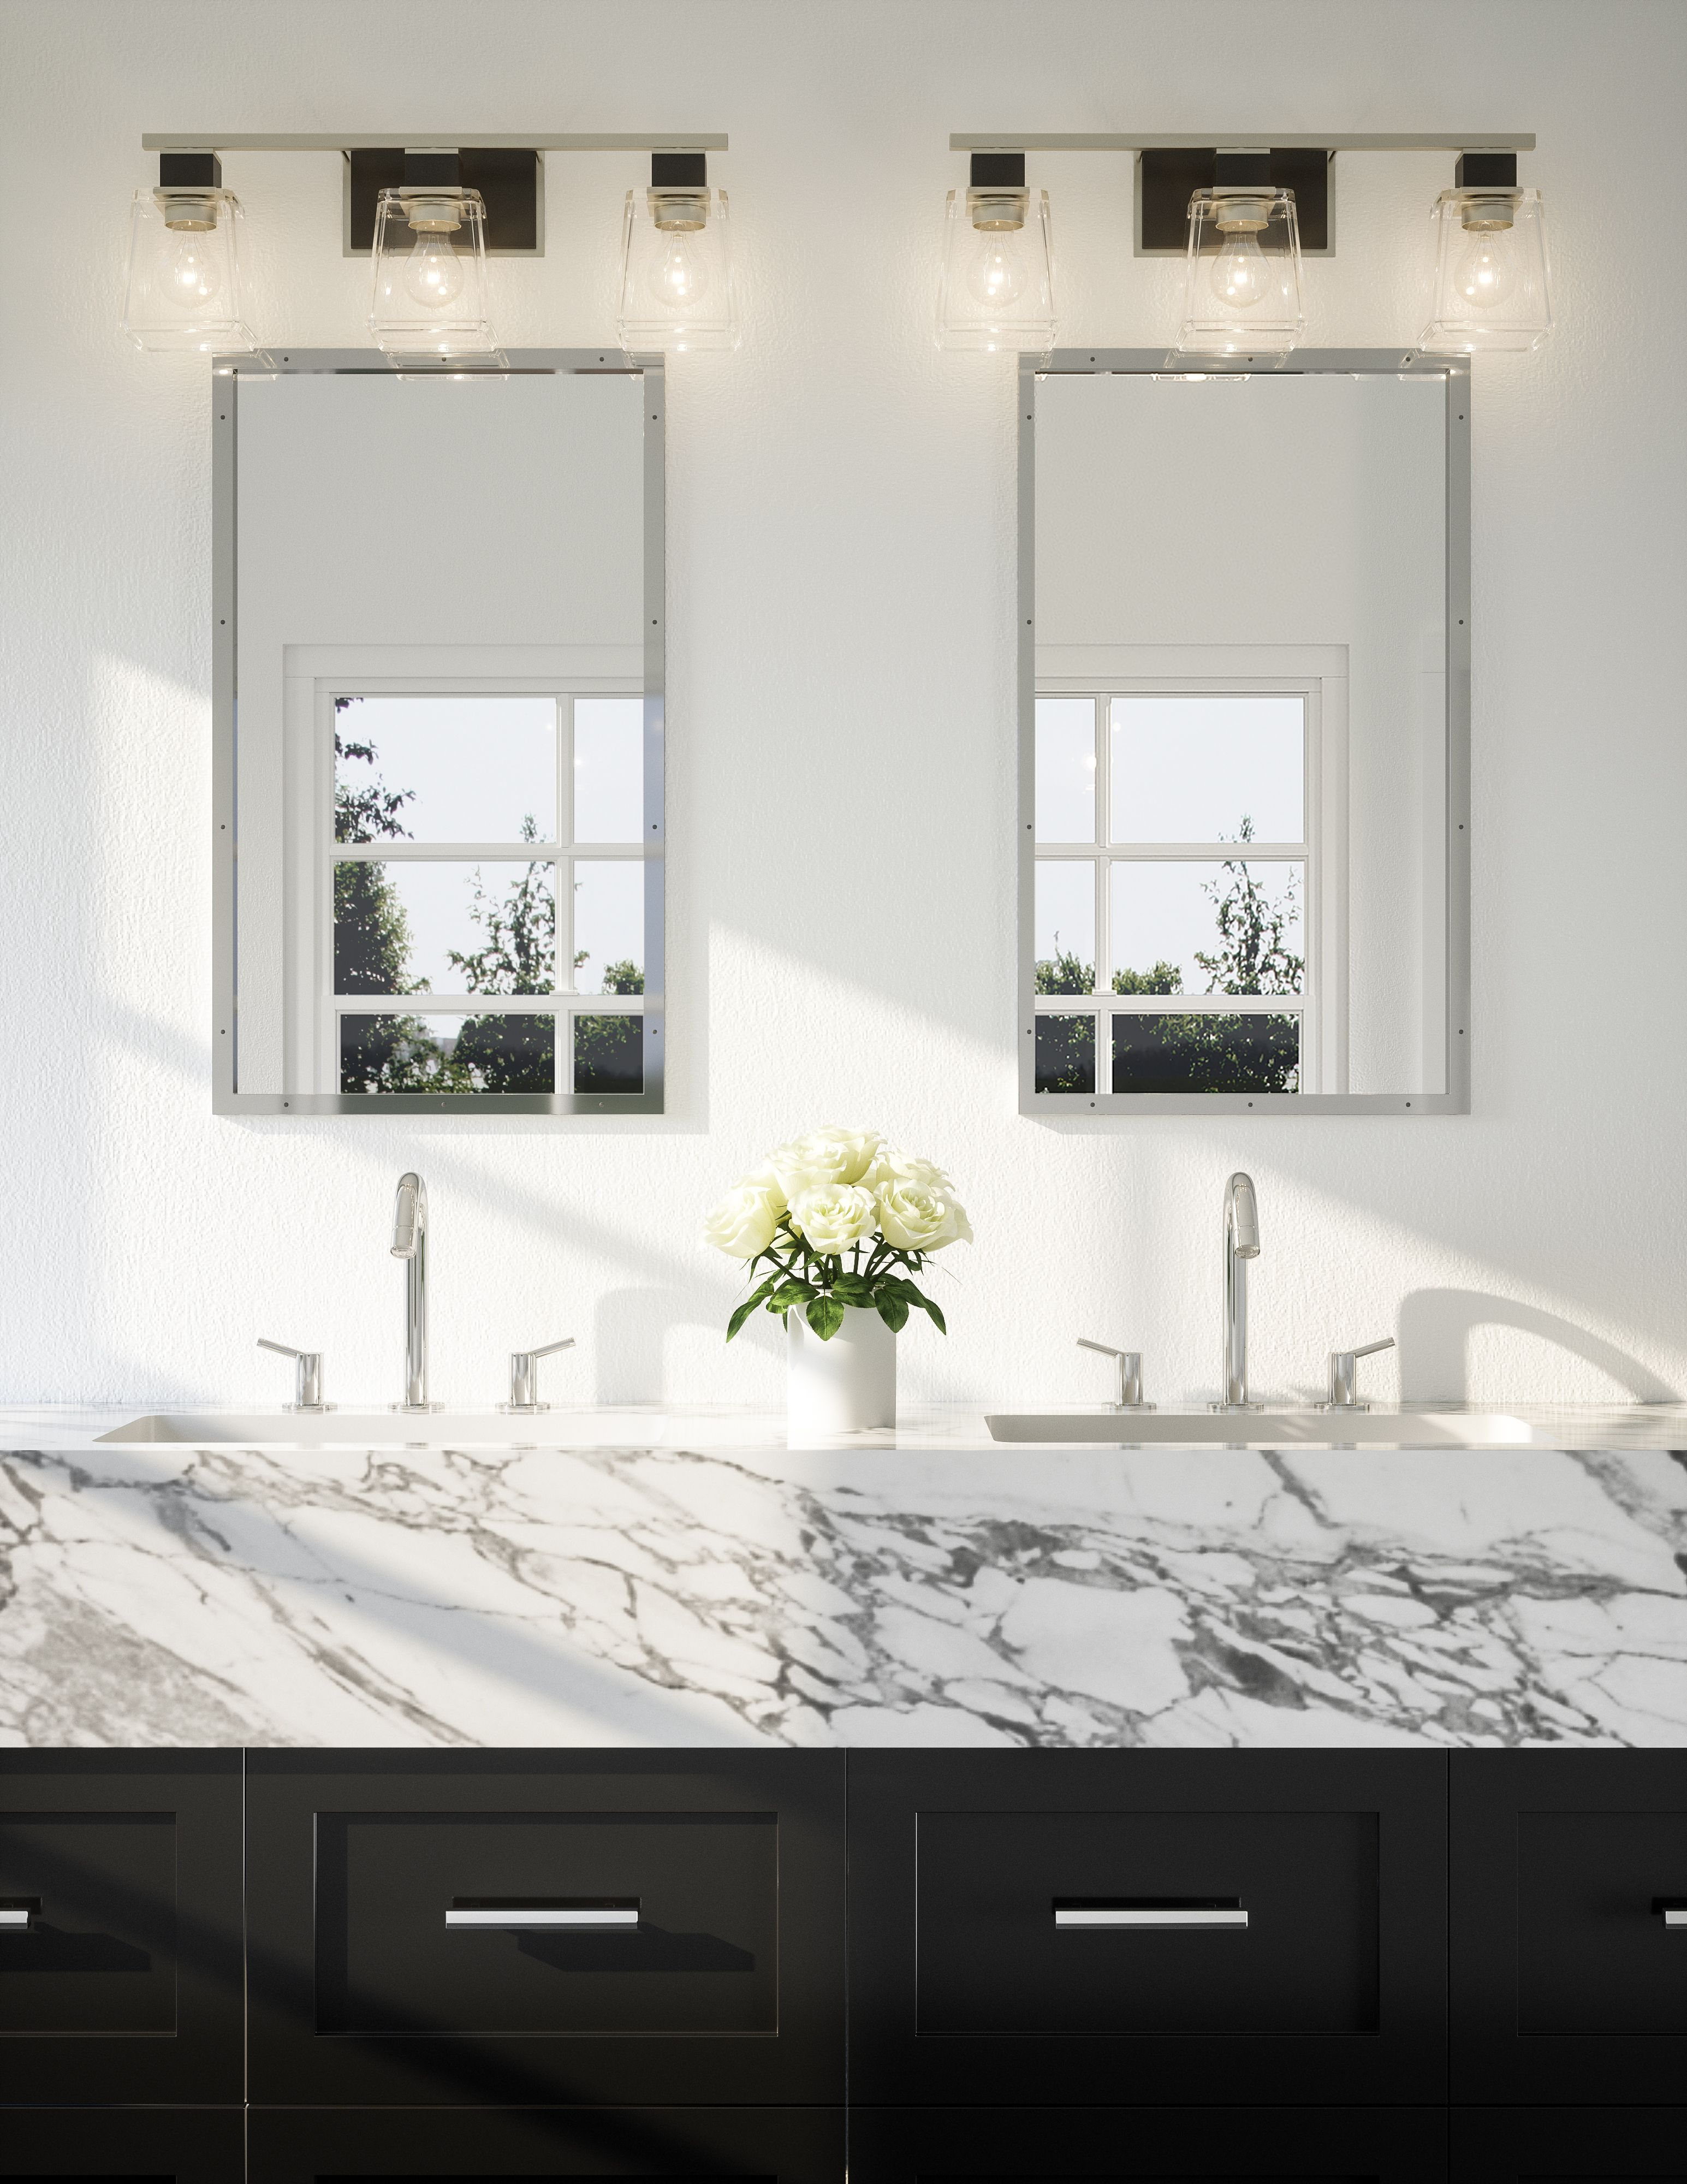 Bathroom Stores Melbourne Lighting Store Melbourne Bathroom Lighting Pinterest